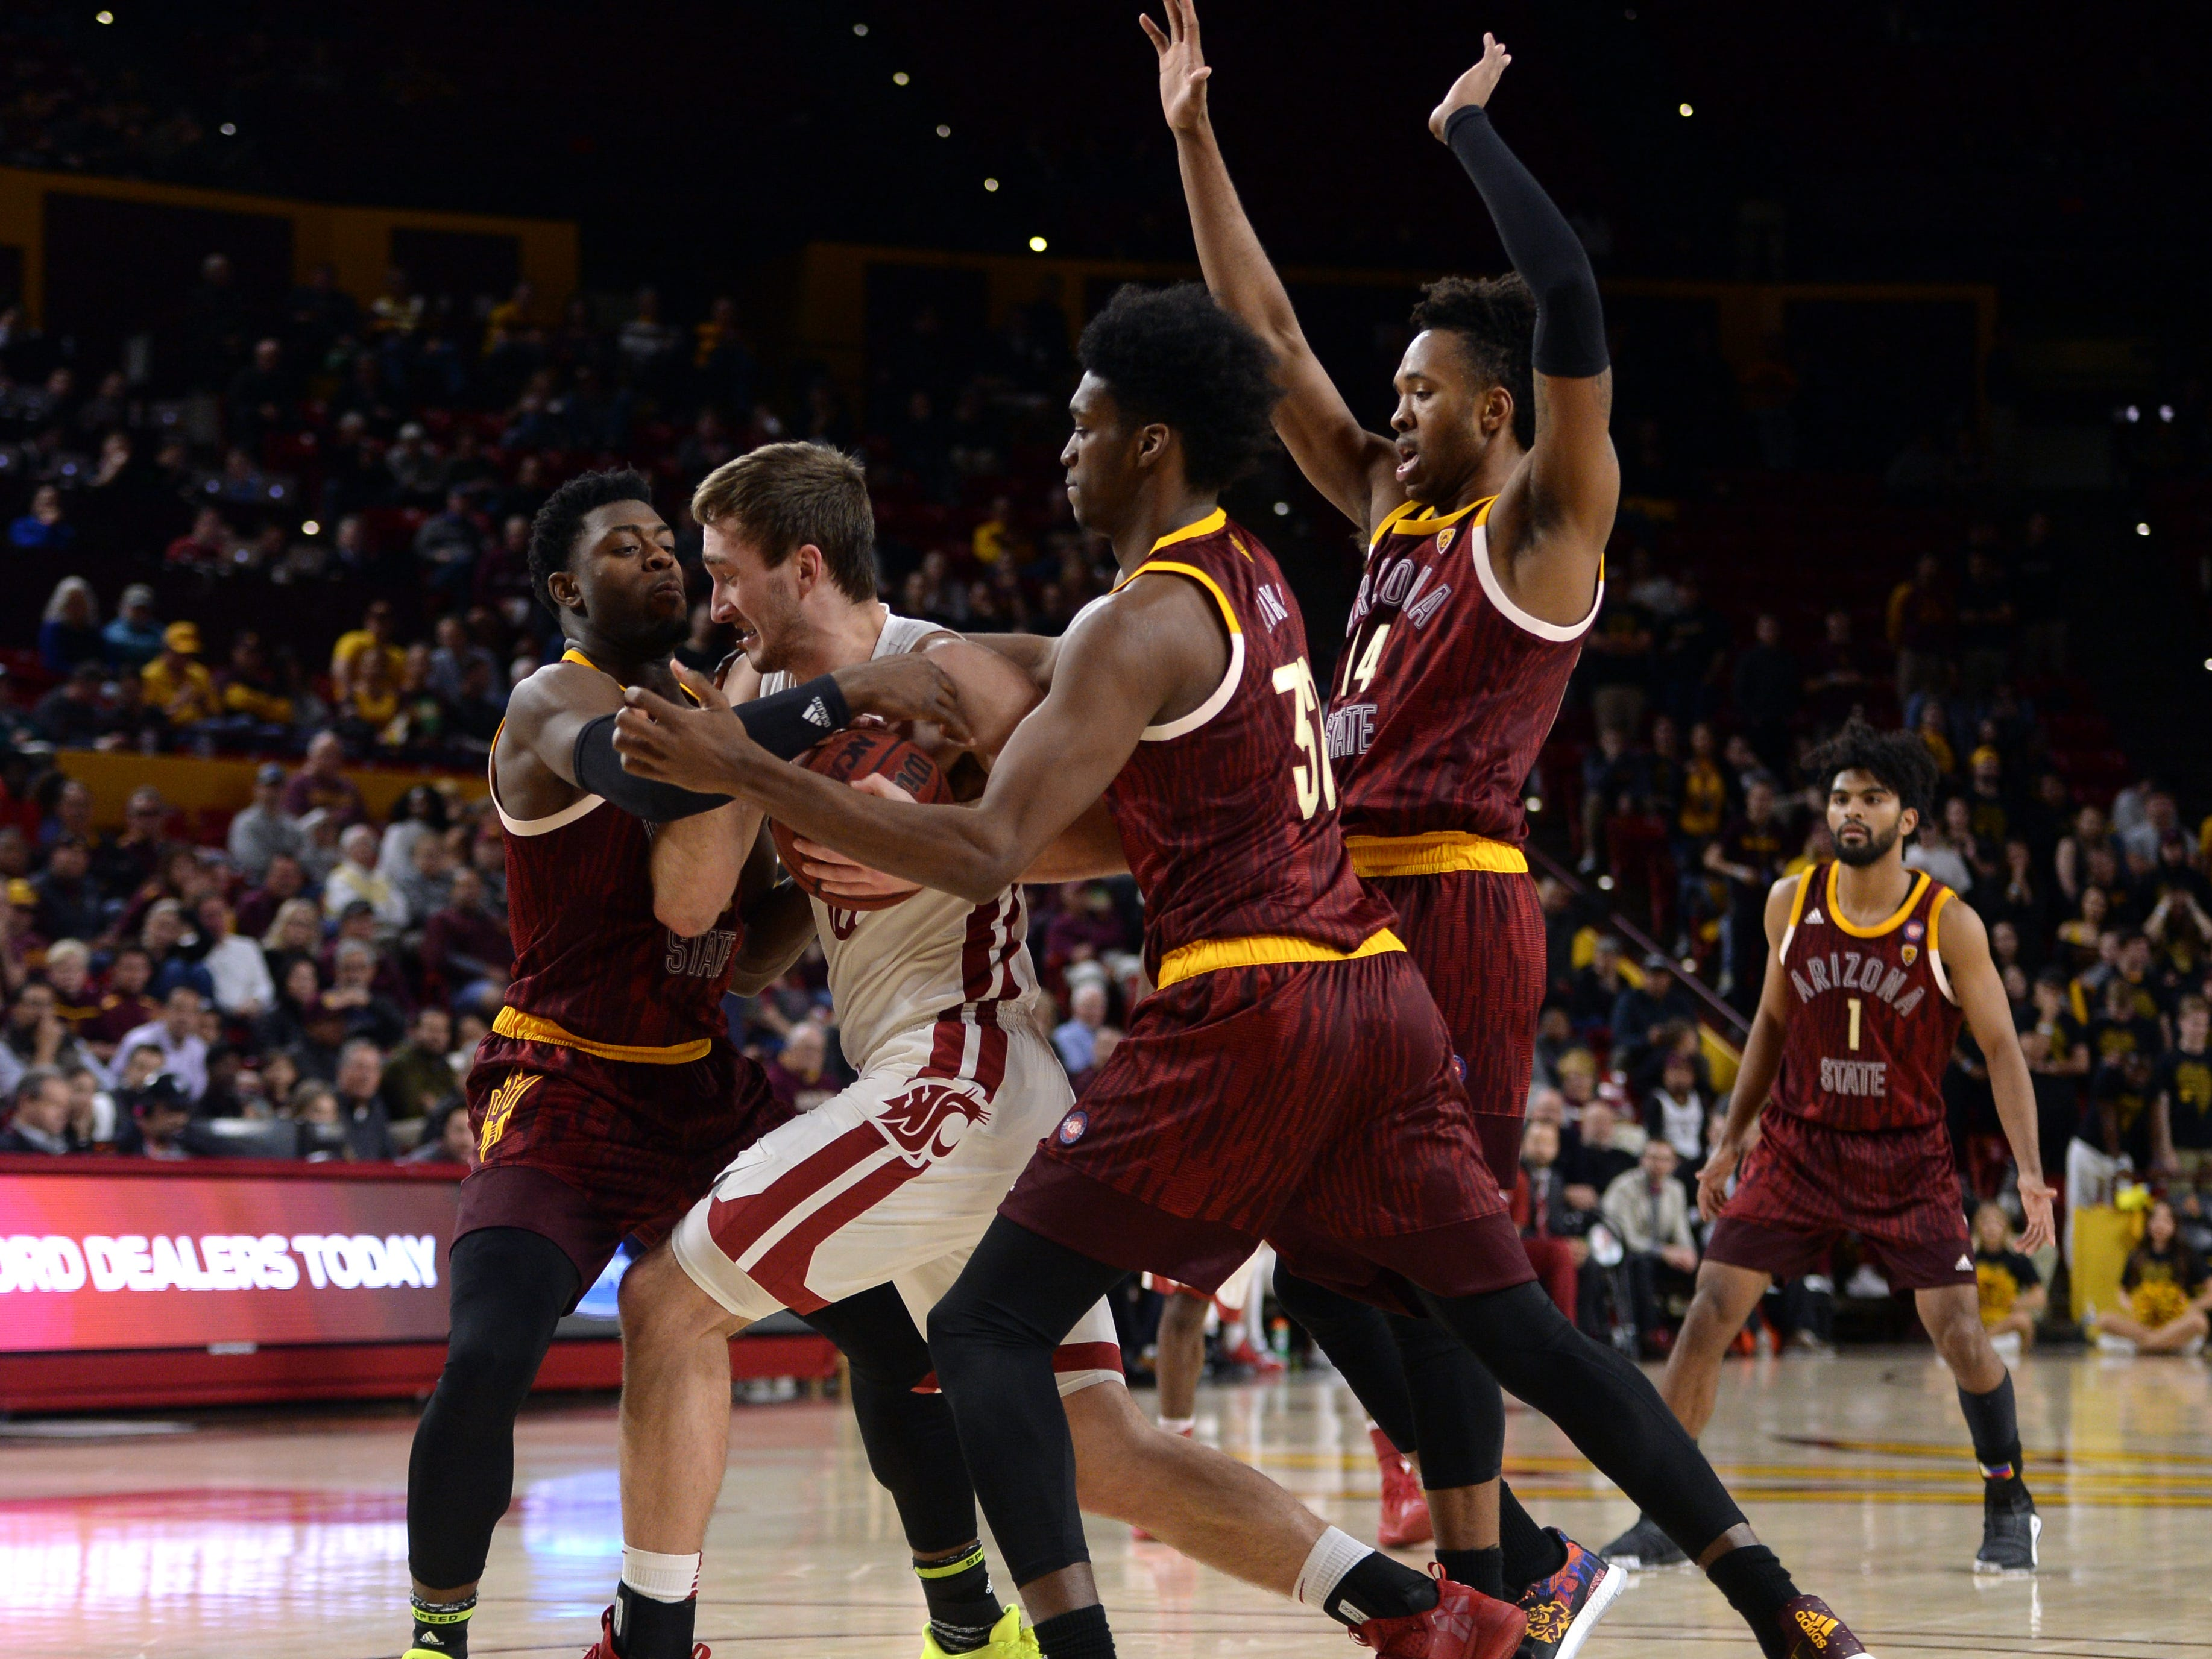 Feb 7, 2019; Tempe, AZ, USA; Washington State Cougars forward Jeff Pollard (13) protects the ball from Arizona State Sun Devils defenders during the second half at Wells Fargo Arena (AZ).